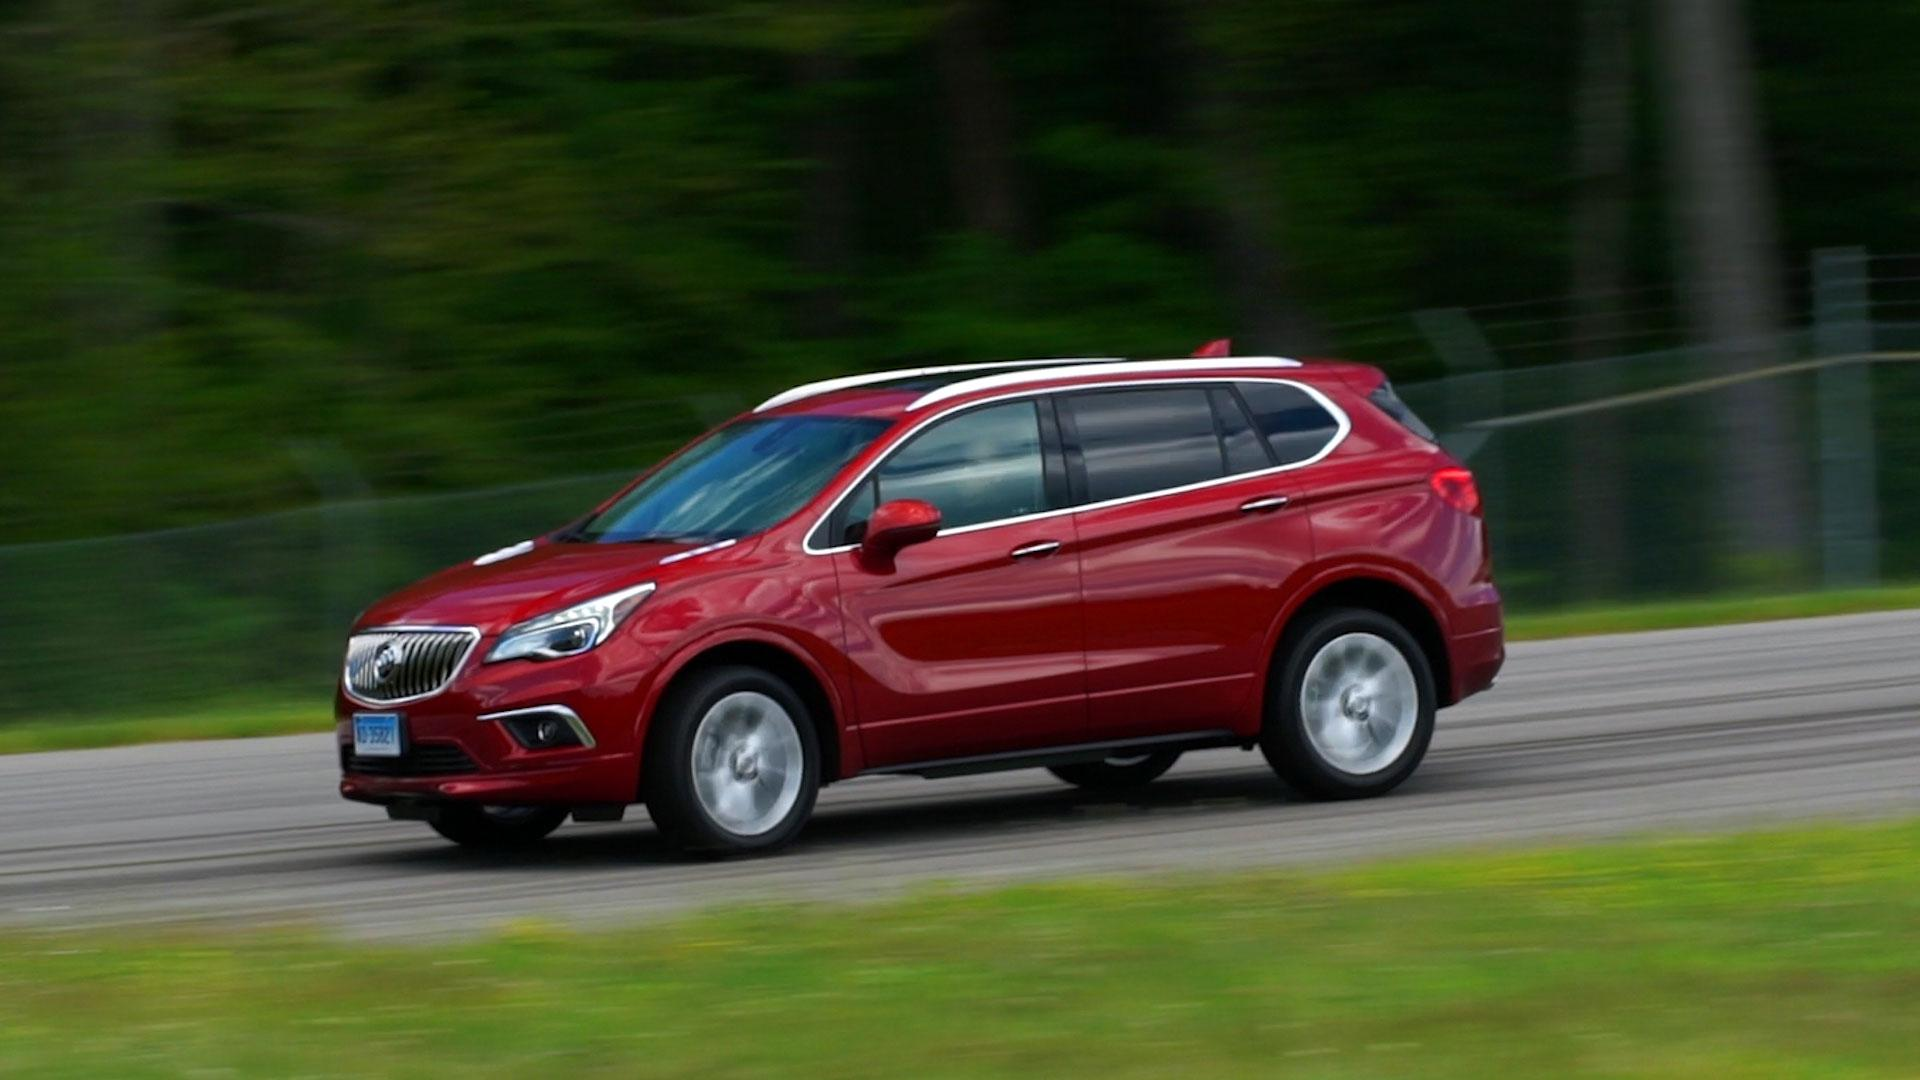 New 2016 Buick Envision SUV Proves Disappointing Consumer Reports